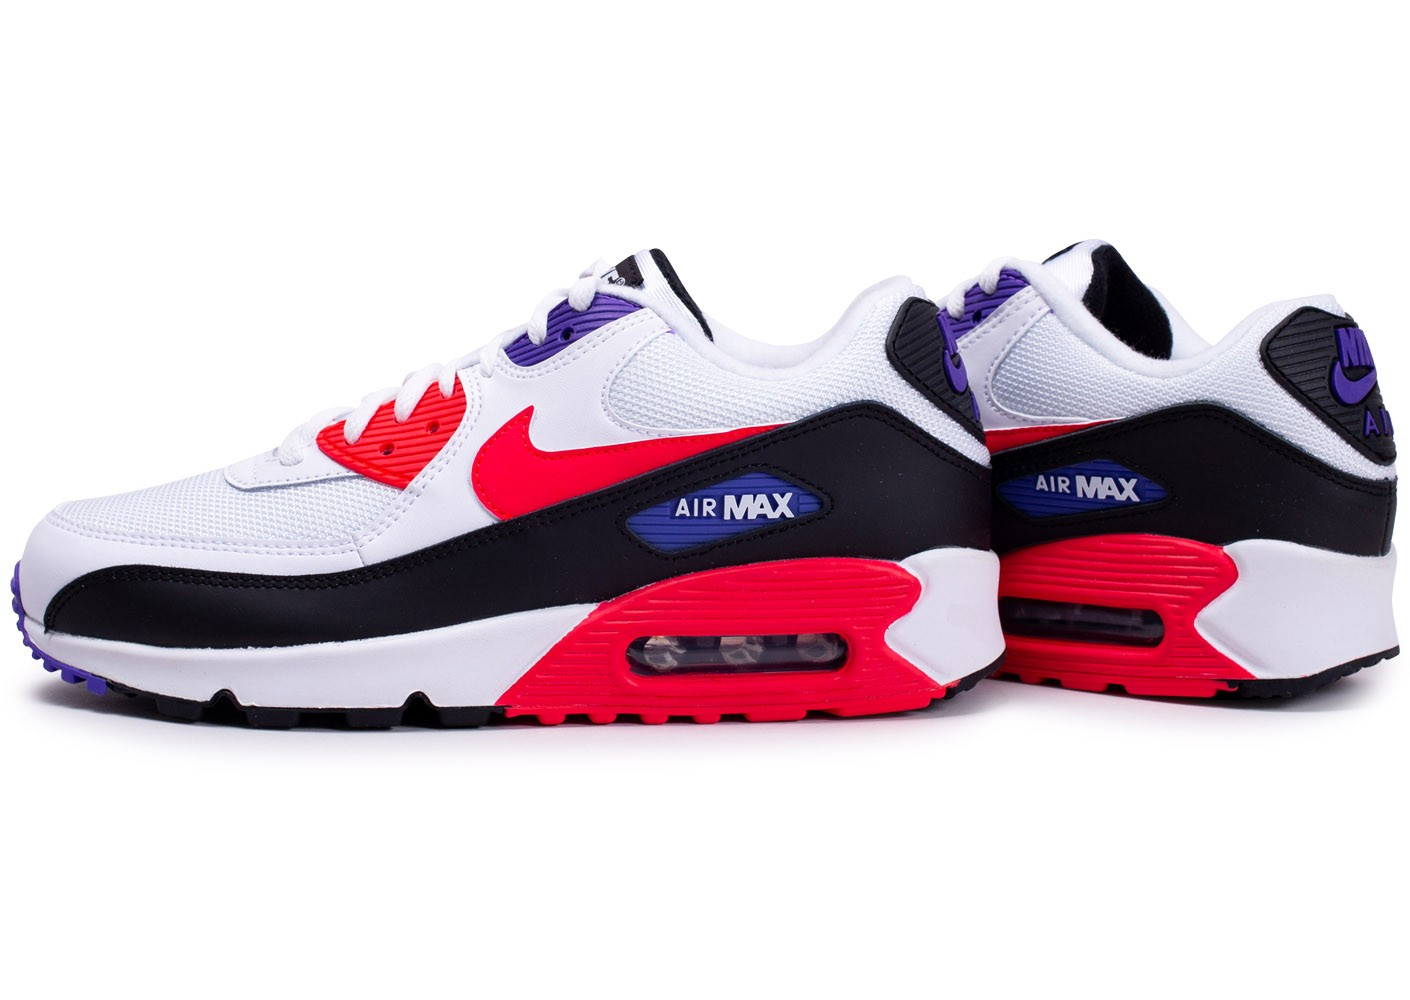 Nike Air Max 90 Essential blanc rouge violet - Chaussures Baskets ...